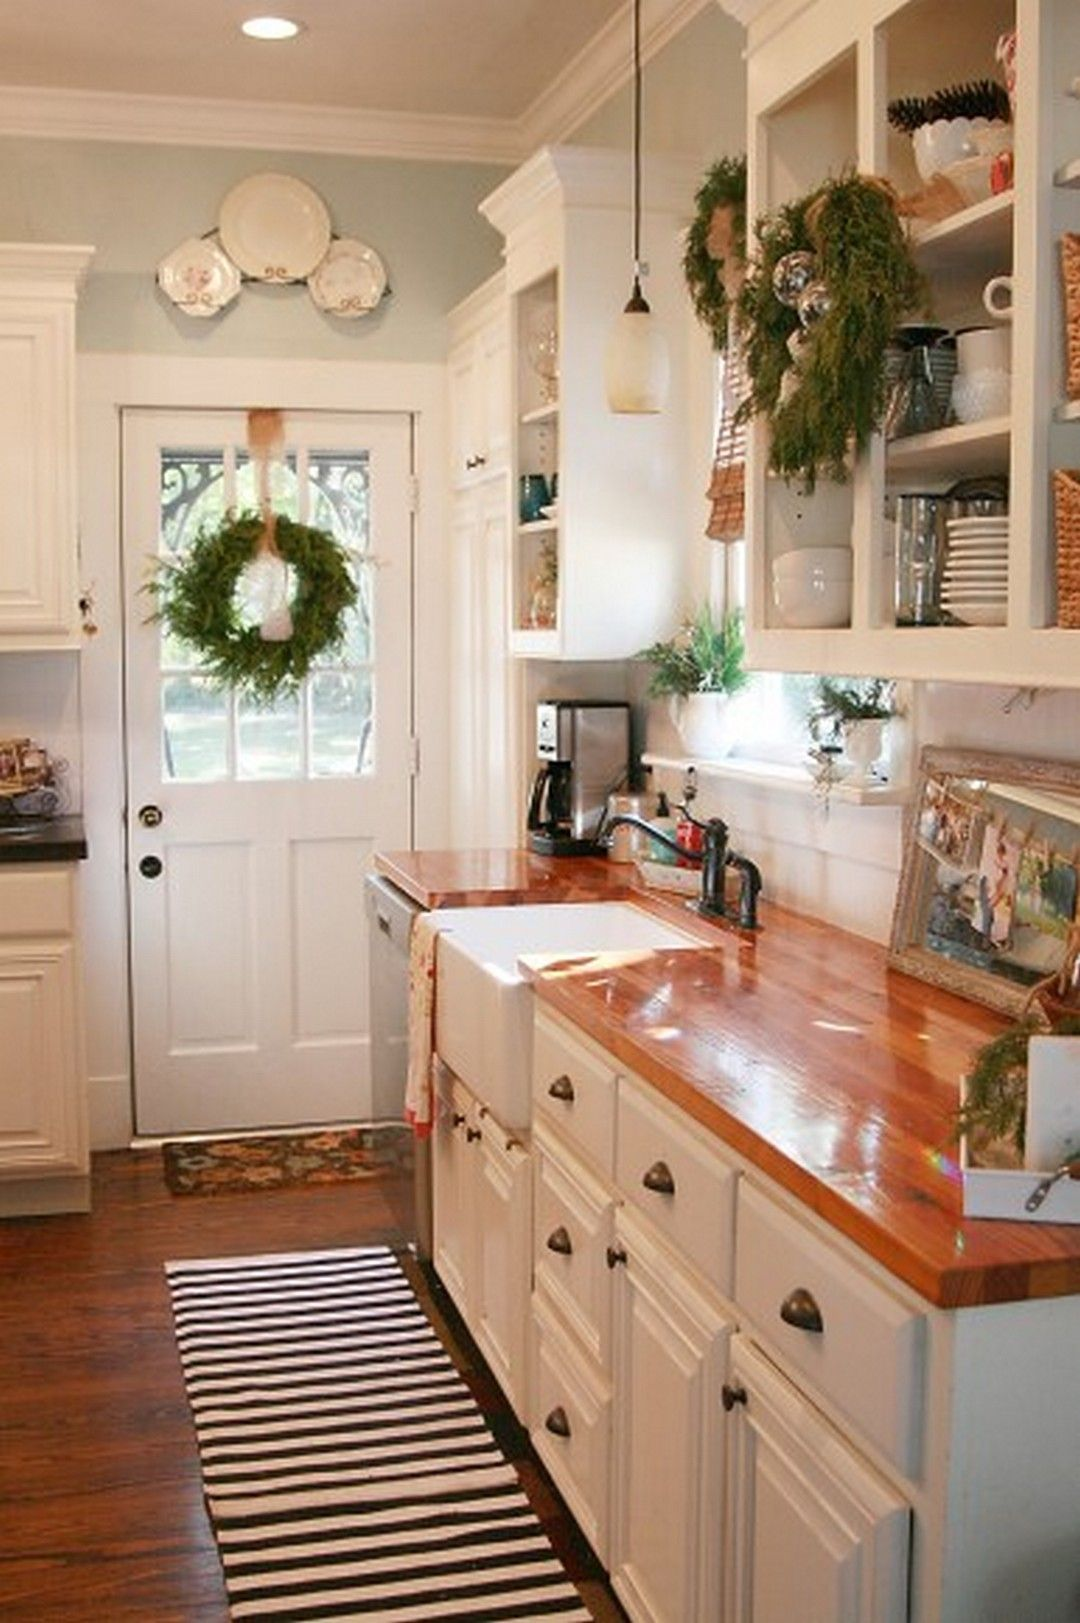 Small Cottage Interiors Cozy Home Office Cottage: 100+ Cozy And Cool Cottage-Style Interior Design